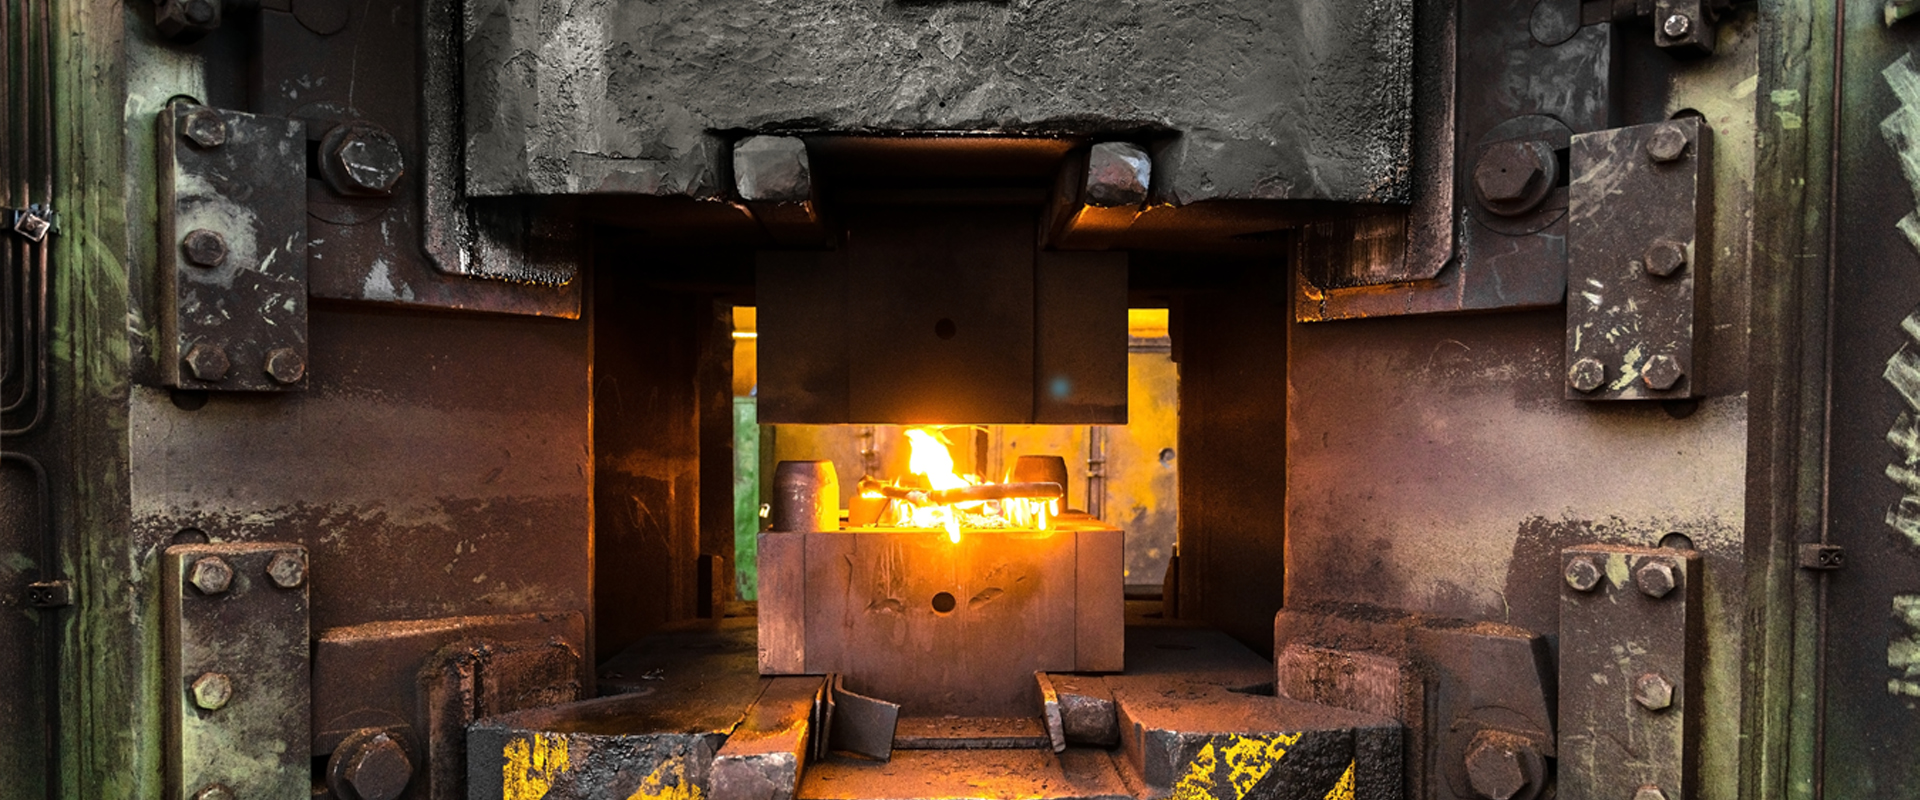 Liquid Molten Steel Industry: Worker pouring liquid metal into crucible.